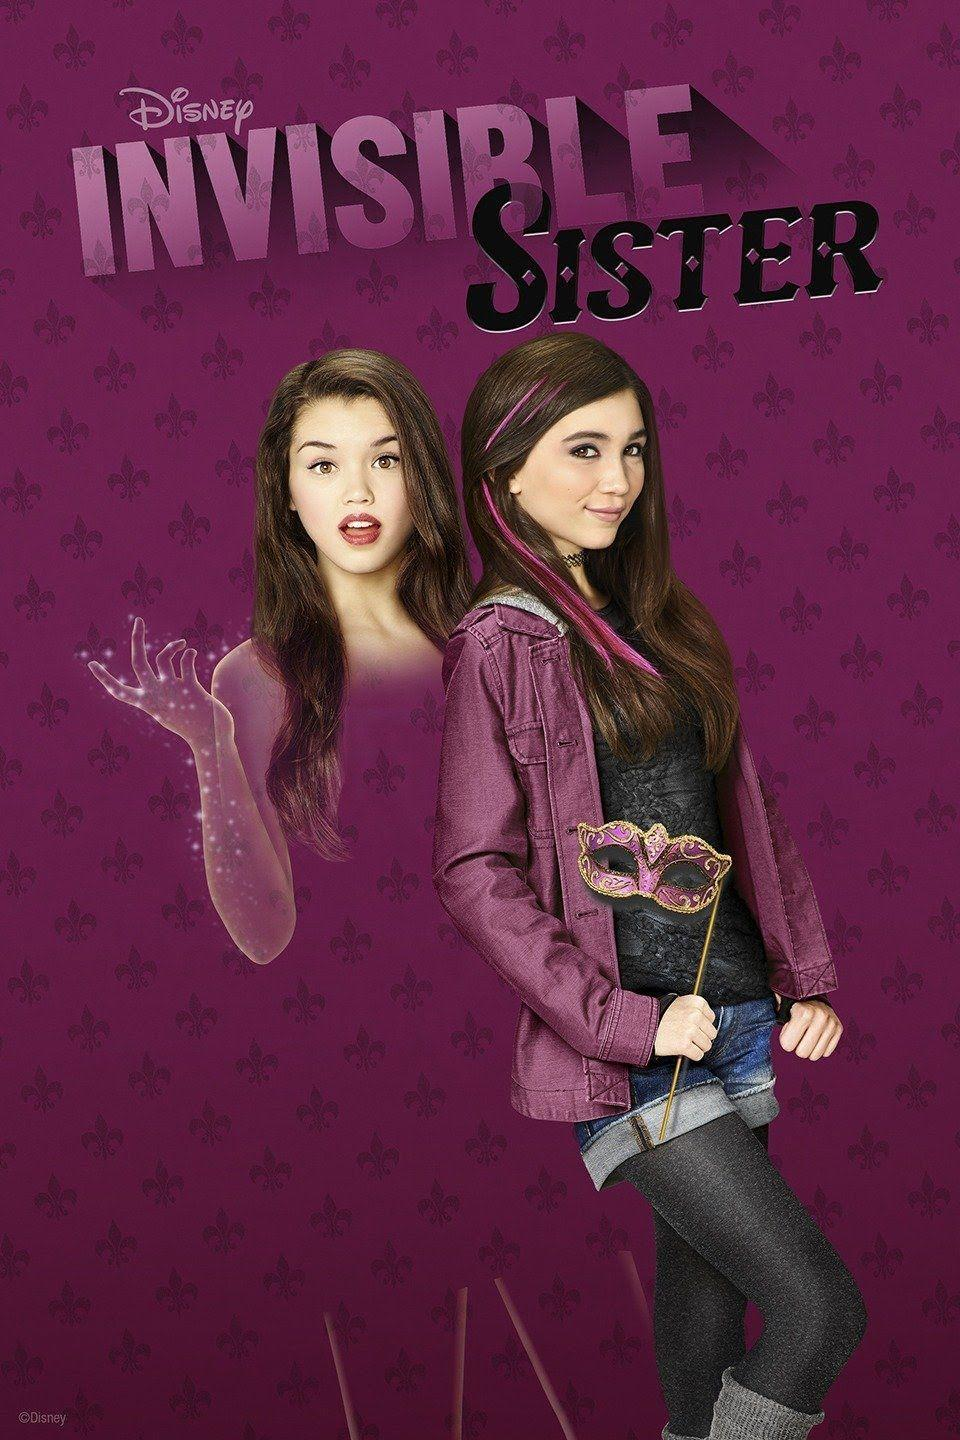 """<p>A science project gone wrong when a student's popular sister Molly (<strong>Paris Berelc</strong>) becomes invisible and if they don't find an antidote in time, she'll be stuck invisible forever.</p><p><a class=""""link rapid-noclick-resp"""" href=""""https://go.redirectingat.com?id=74968X1596630&url=https%3A%2F%2Fwww.disneyplus.com%2Fmovies%2Finvisible-sister%2F4XLkQ95dRew5&sref=https%3A%2F%2Fwww.goodhousekeeping.com%2Flife%2Fentertainment%2Fg33651563%2Fdisney-halloween-movies%2F"""" rel=""""nofollow noopener"""" target=""""_blank"""" data-ylk=""""slk:WATCH NOW"""">WATCH NOW</a></p>"""